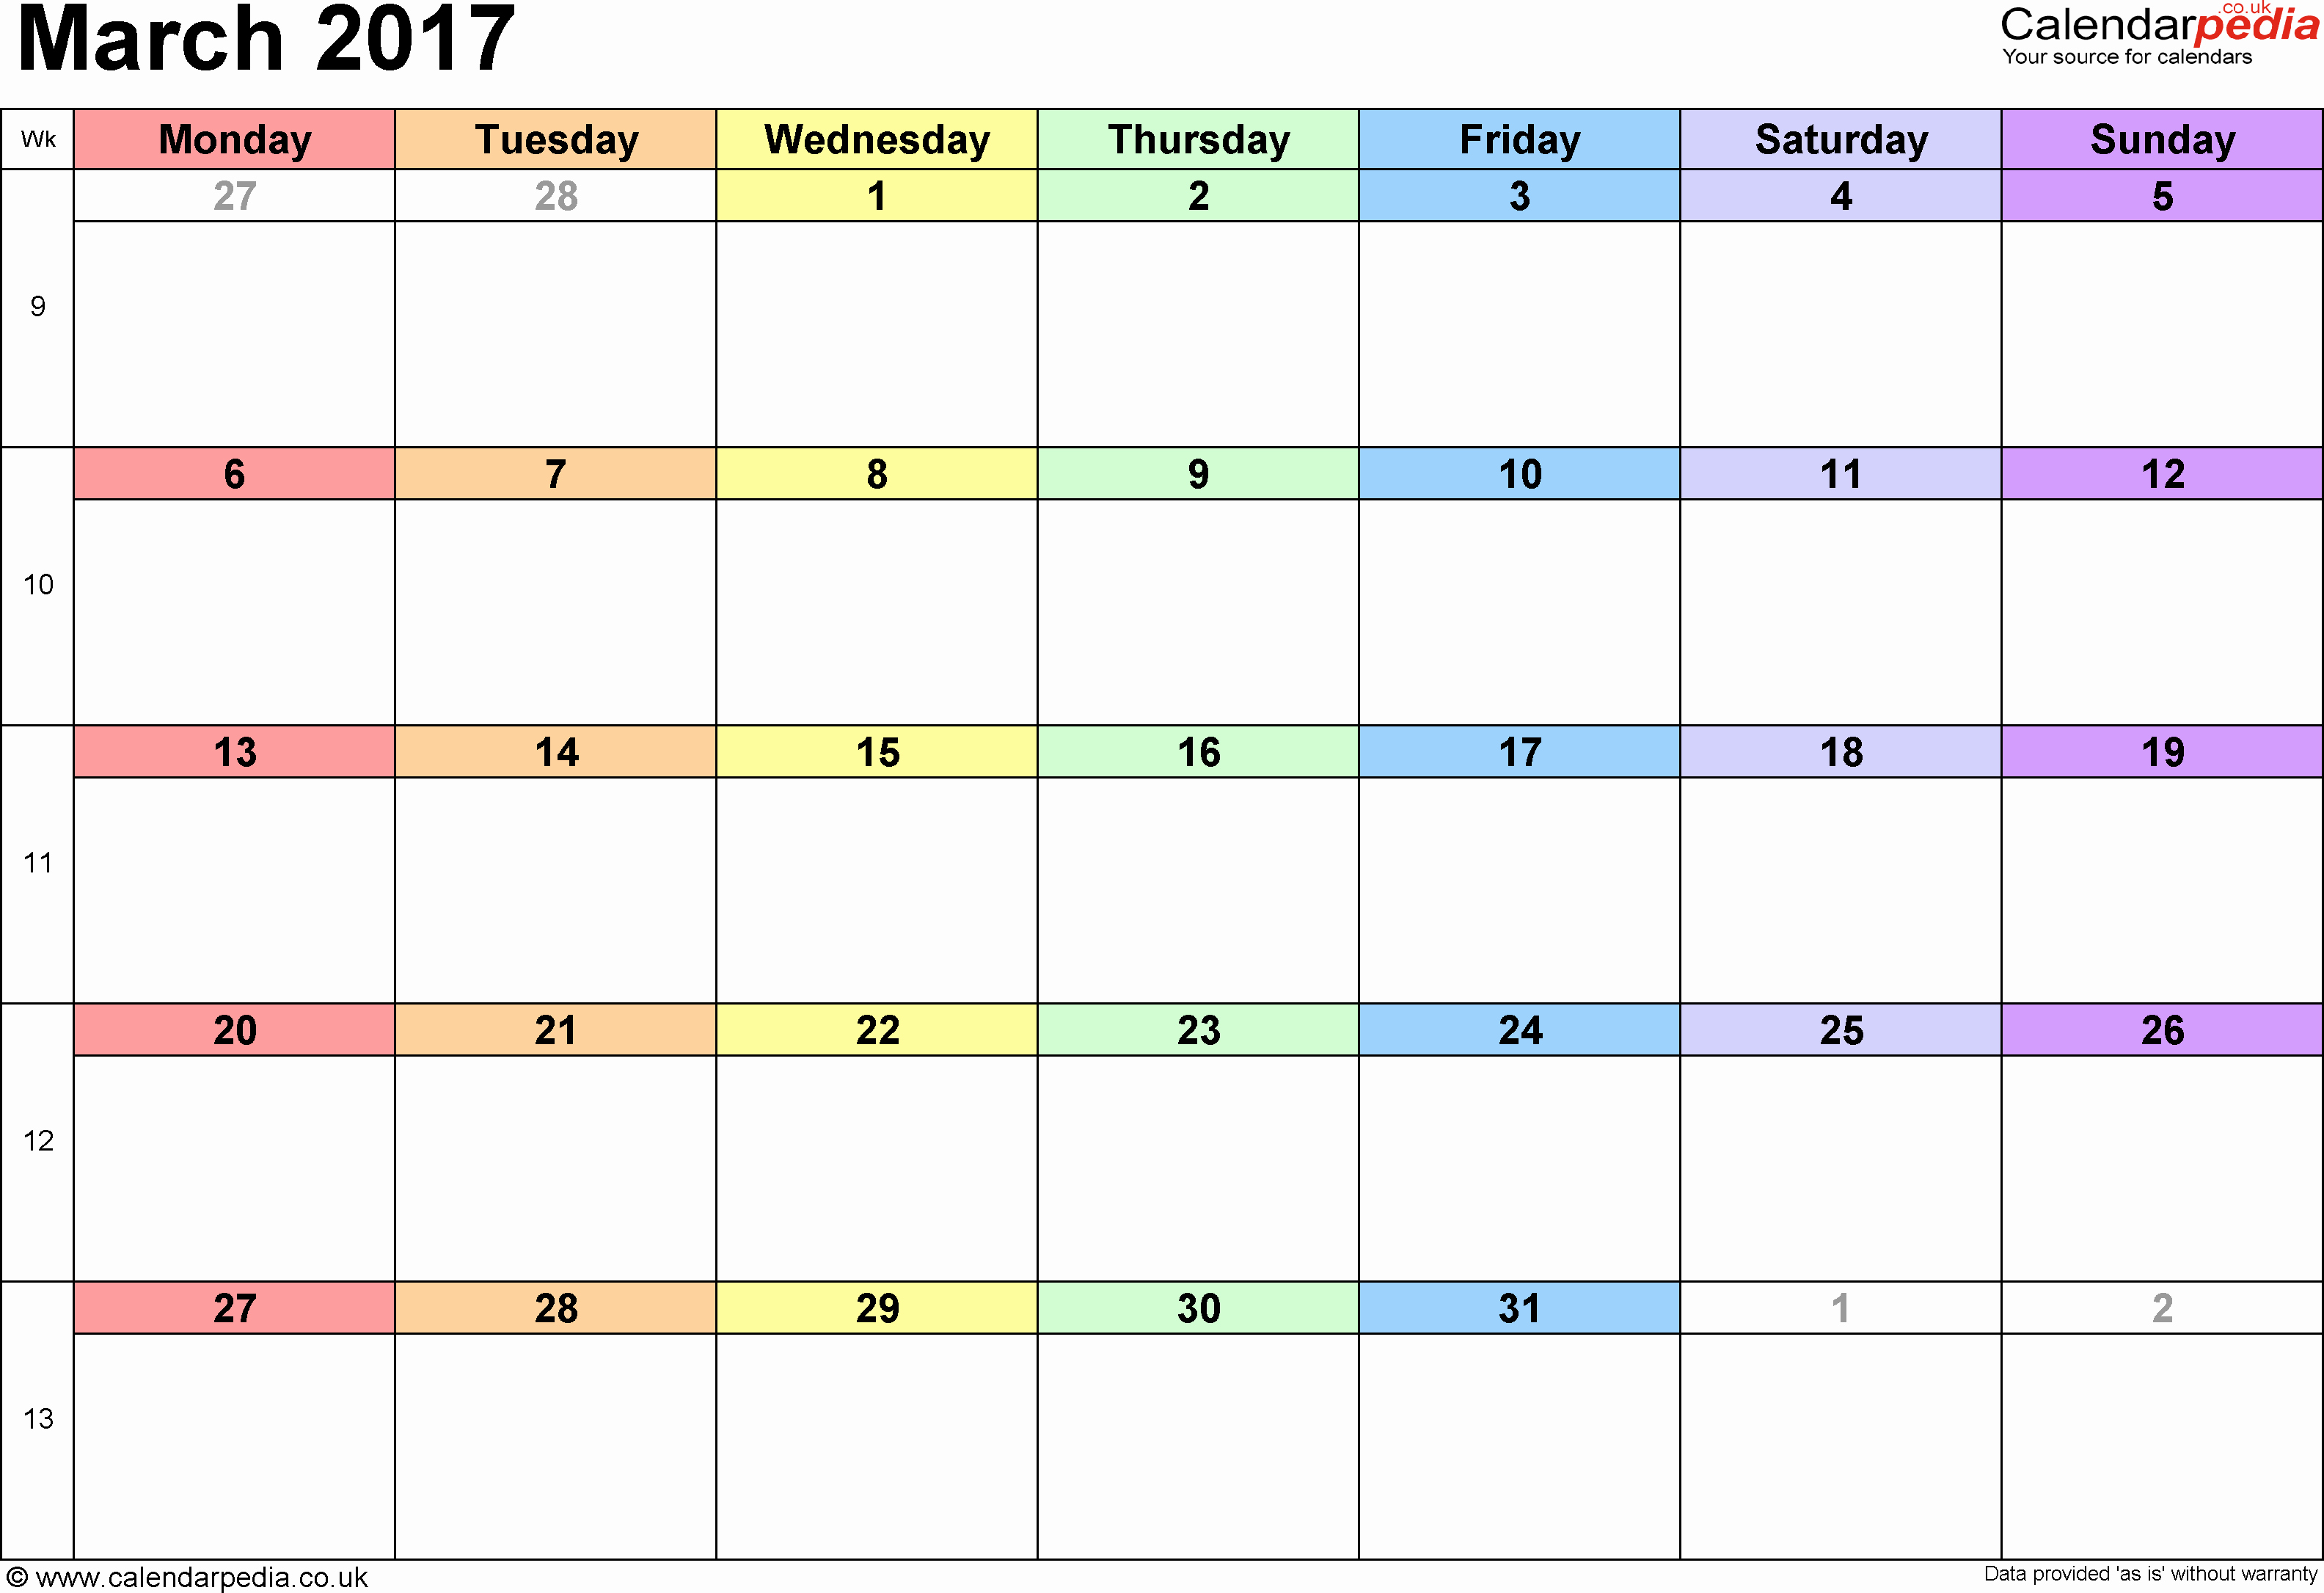 Calendar 2017 Template with Holidays Awesome Calendar March 2017 Uk Bank Holidays Excel Pdf Word